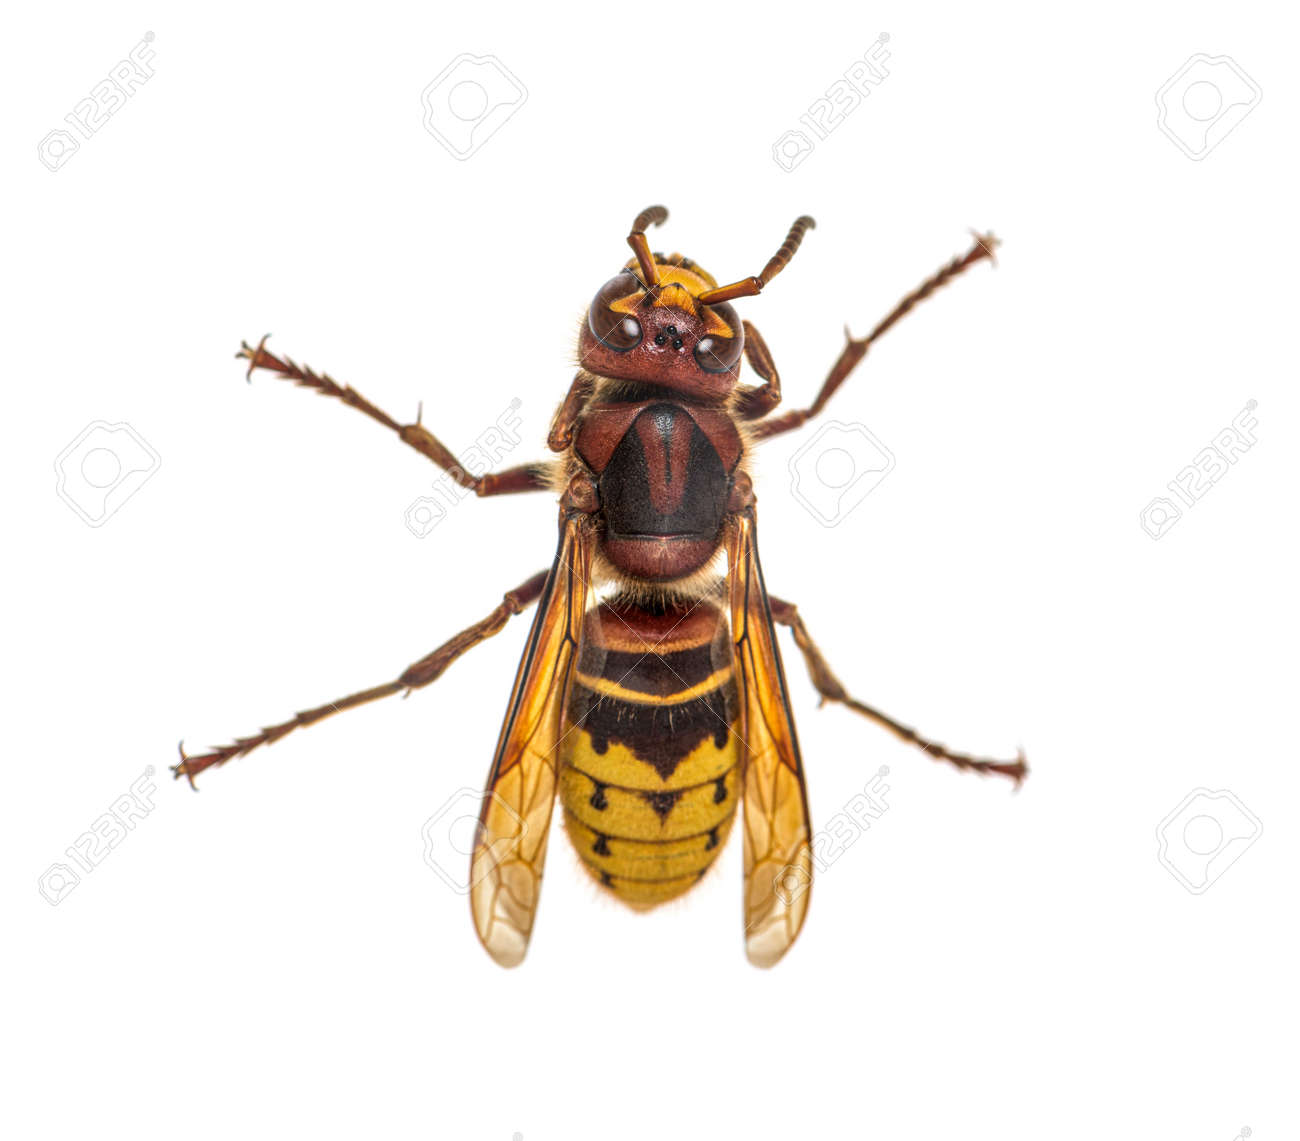 Top view of a Hornet, Vespa Crabro, isolated on white - 171048716